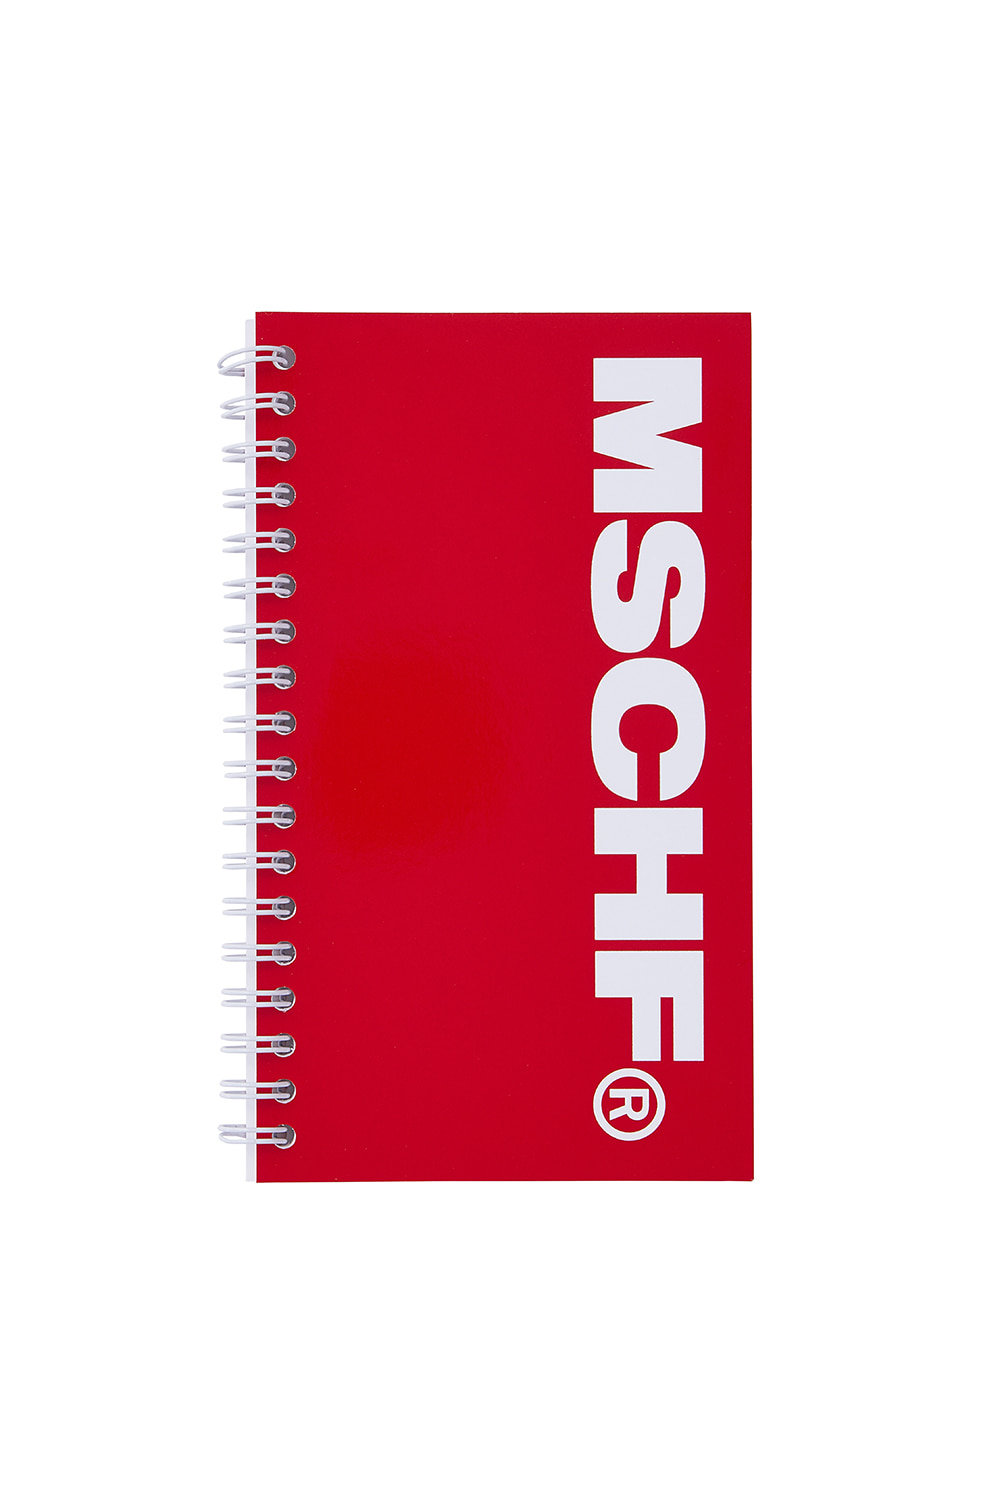 MSCHF_NOTEBOOK_red